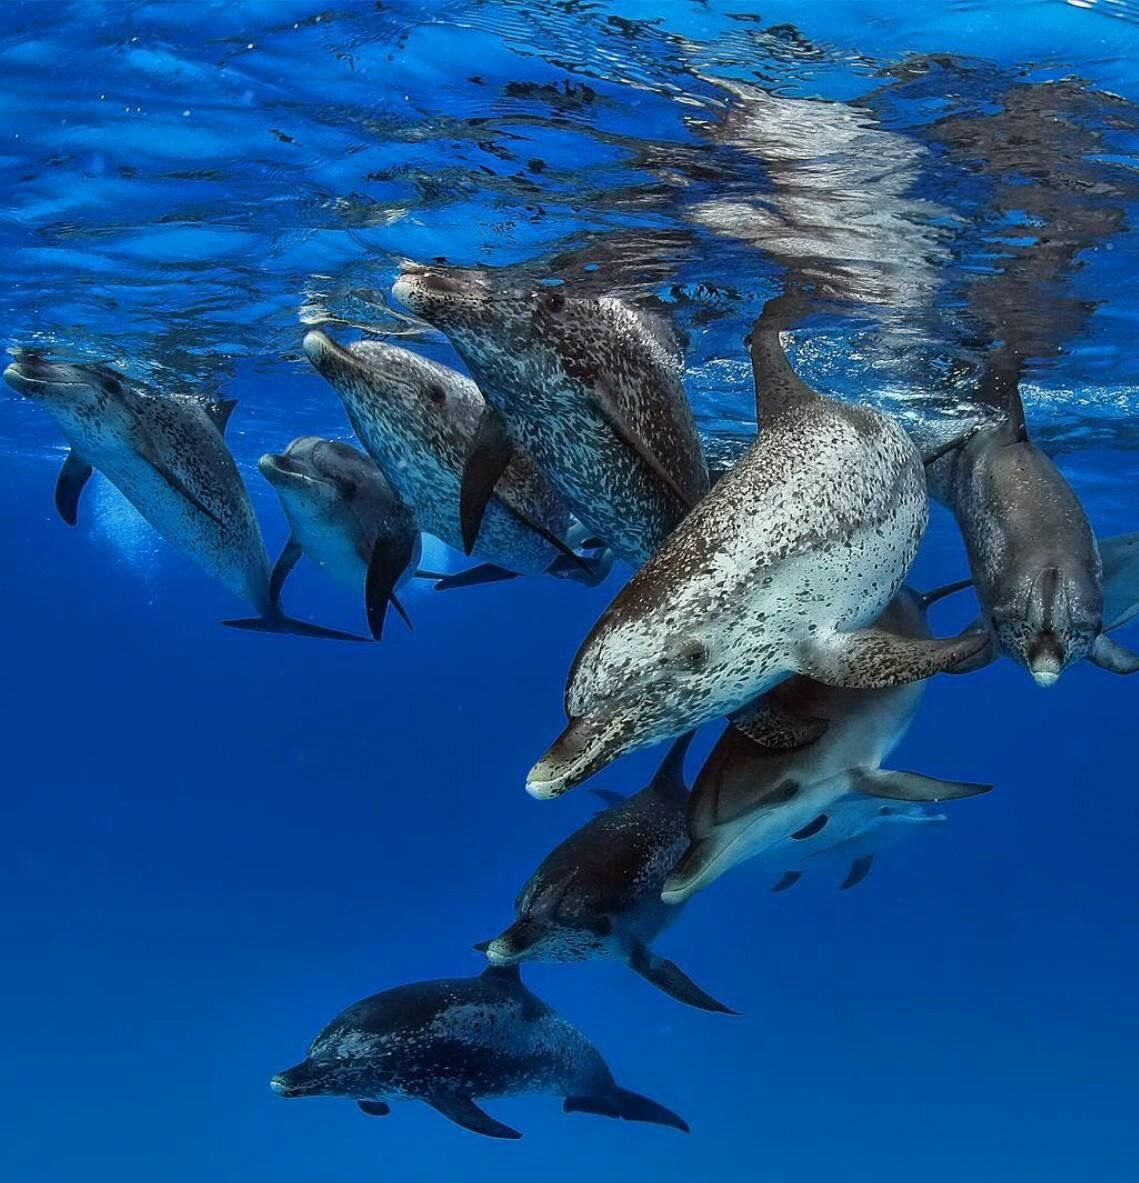 Pin by Keri U on Dolphins o), they need their own board